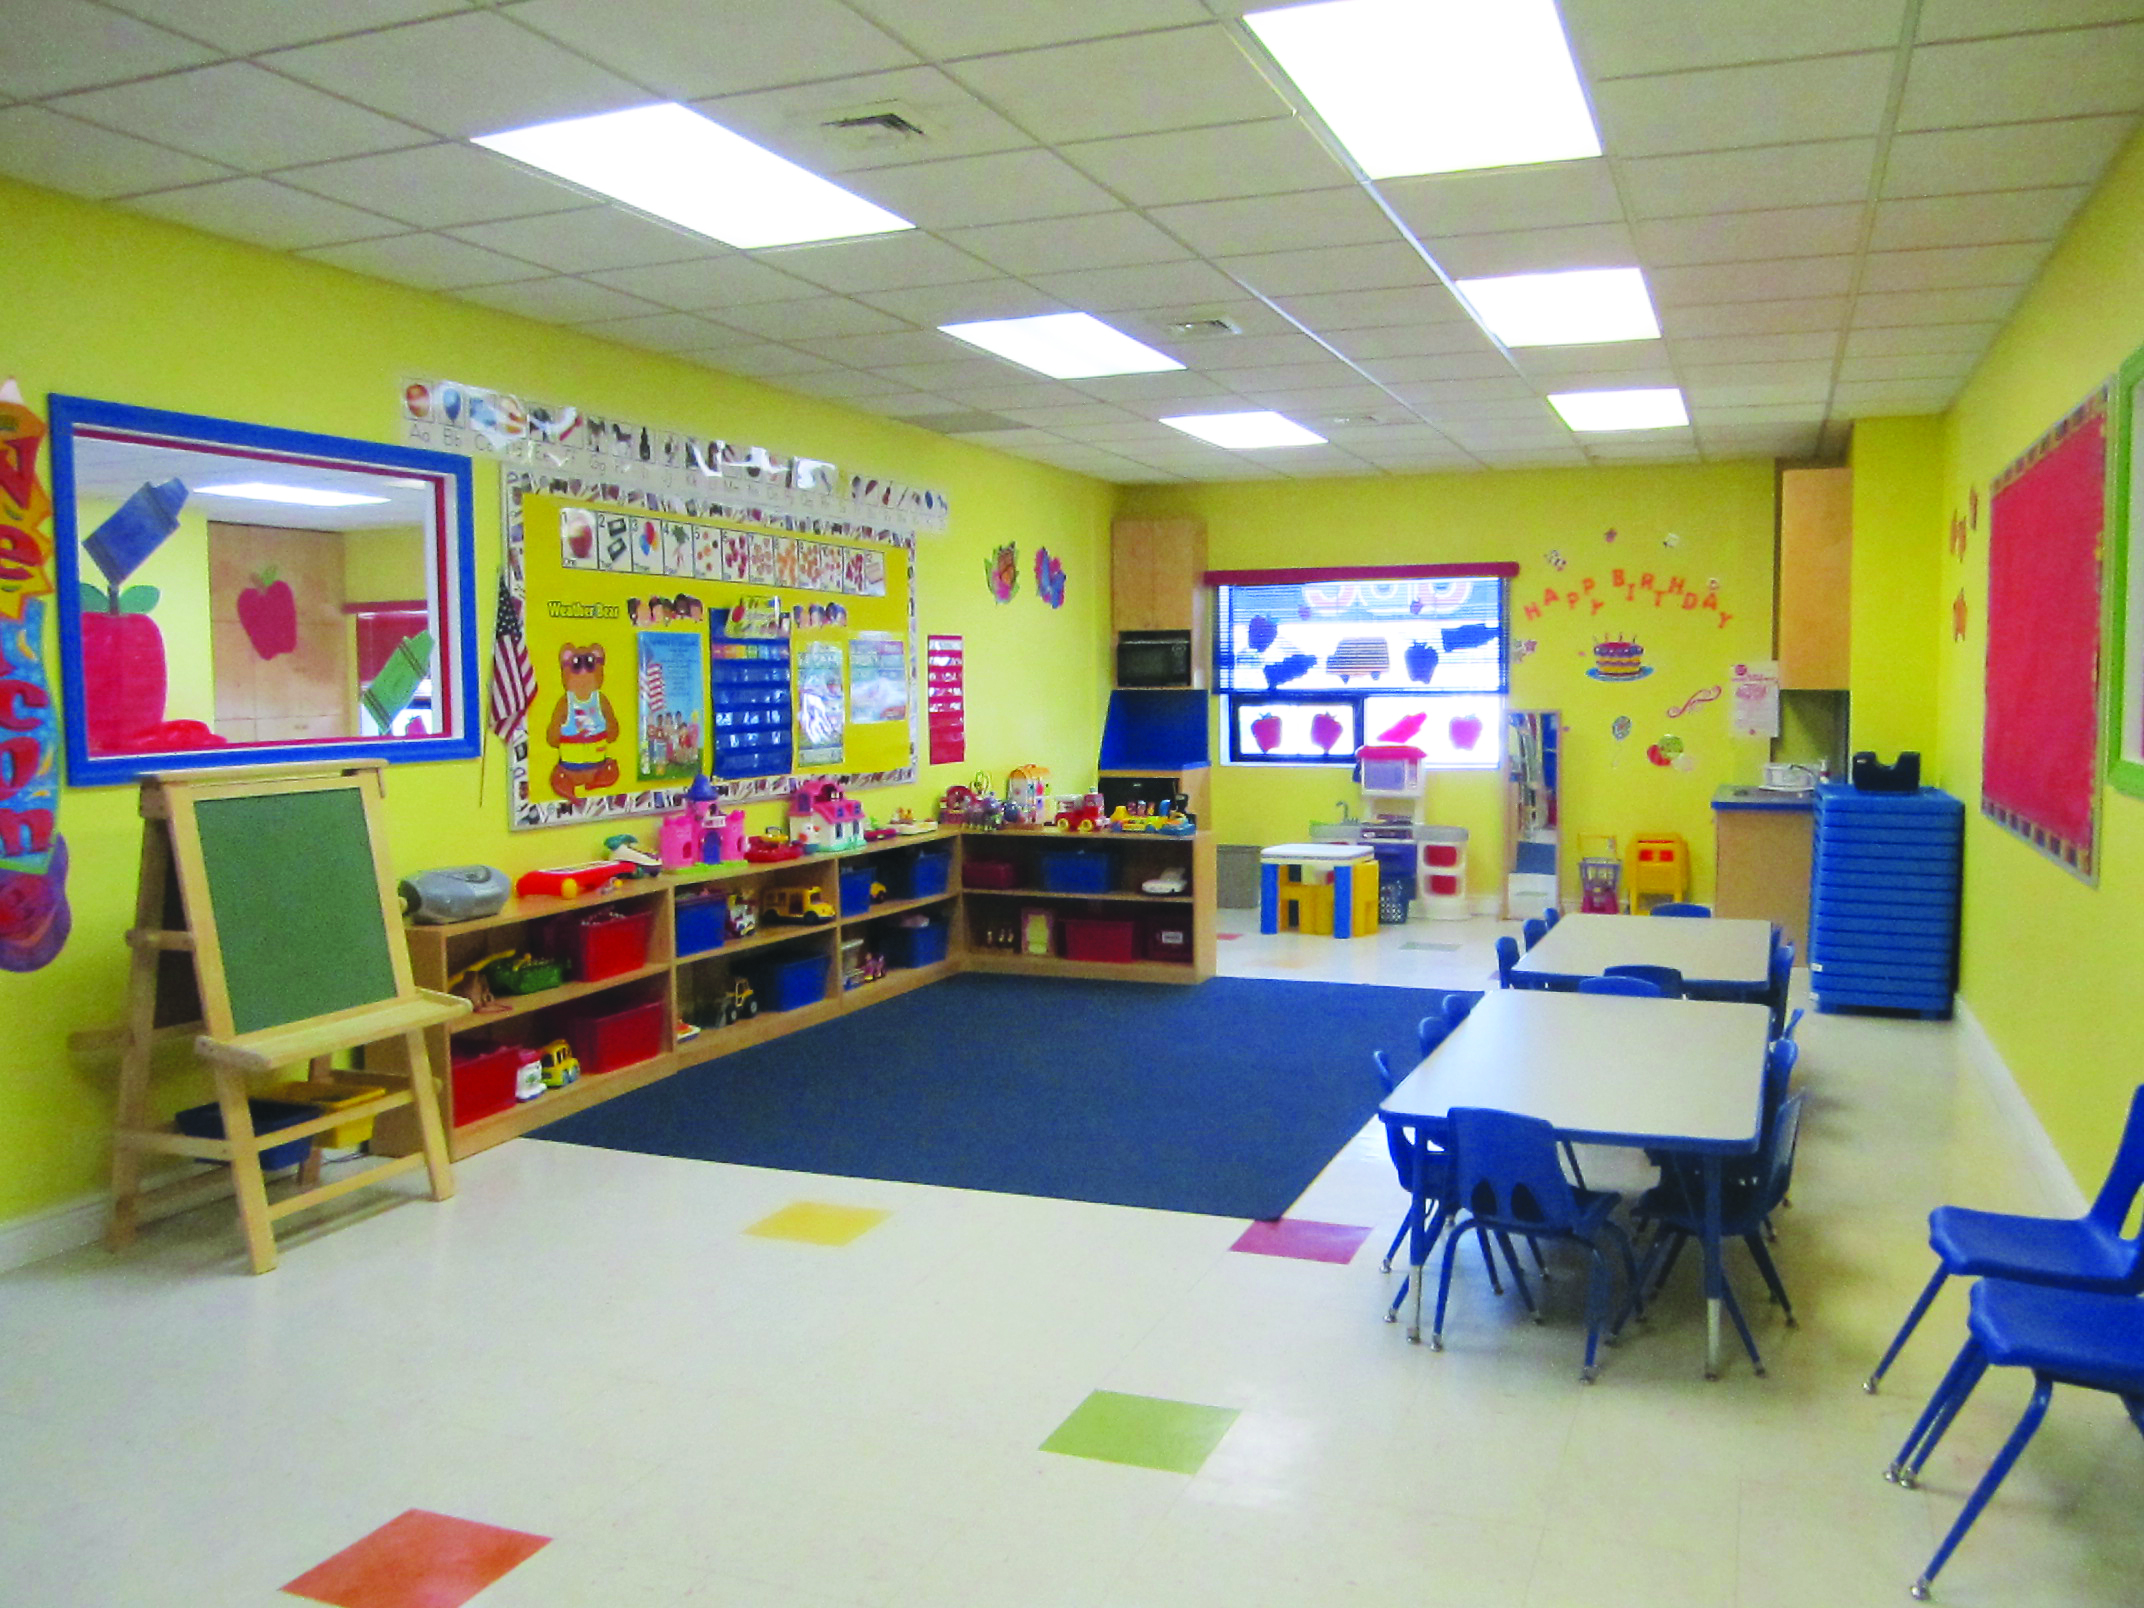 Sunshine Daycare Center's curriculum will emphasize reading, writing, math, and science skills, as well as fine and gross motor skills.